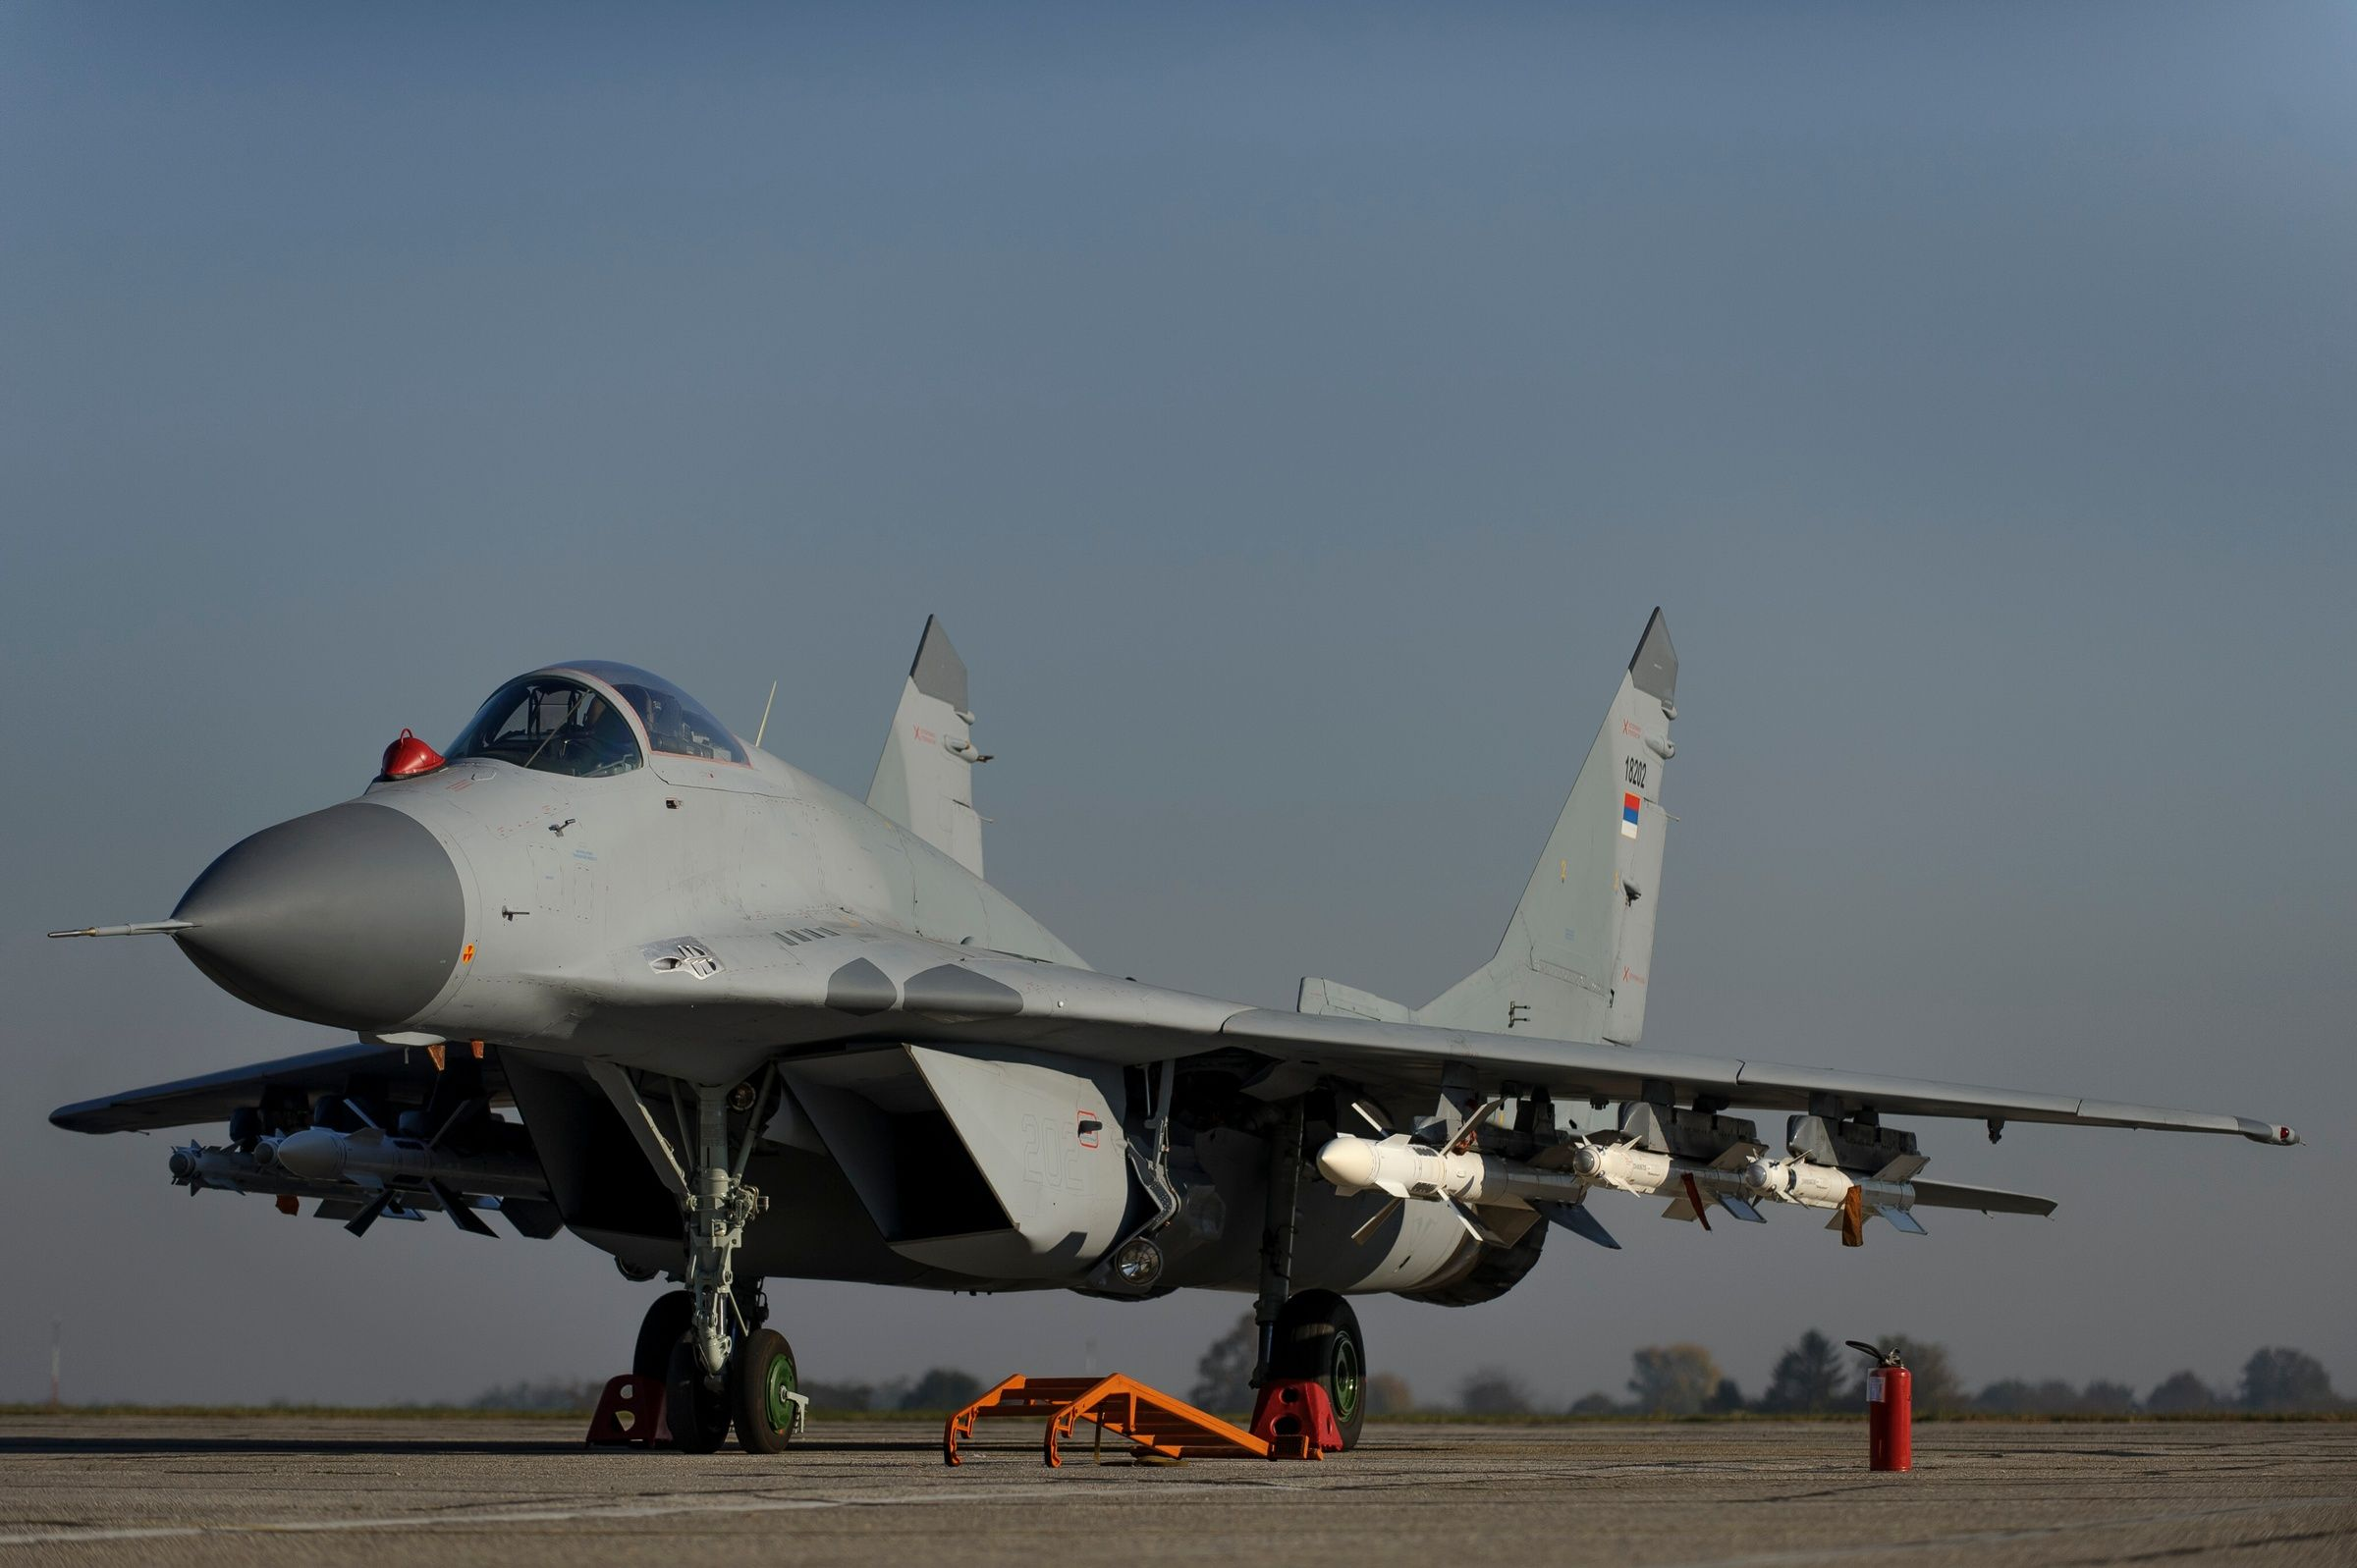 Serbia has received six former Russian air force RAC MiG-29 ...